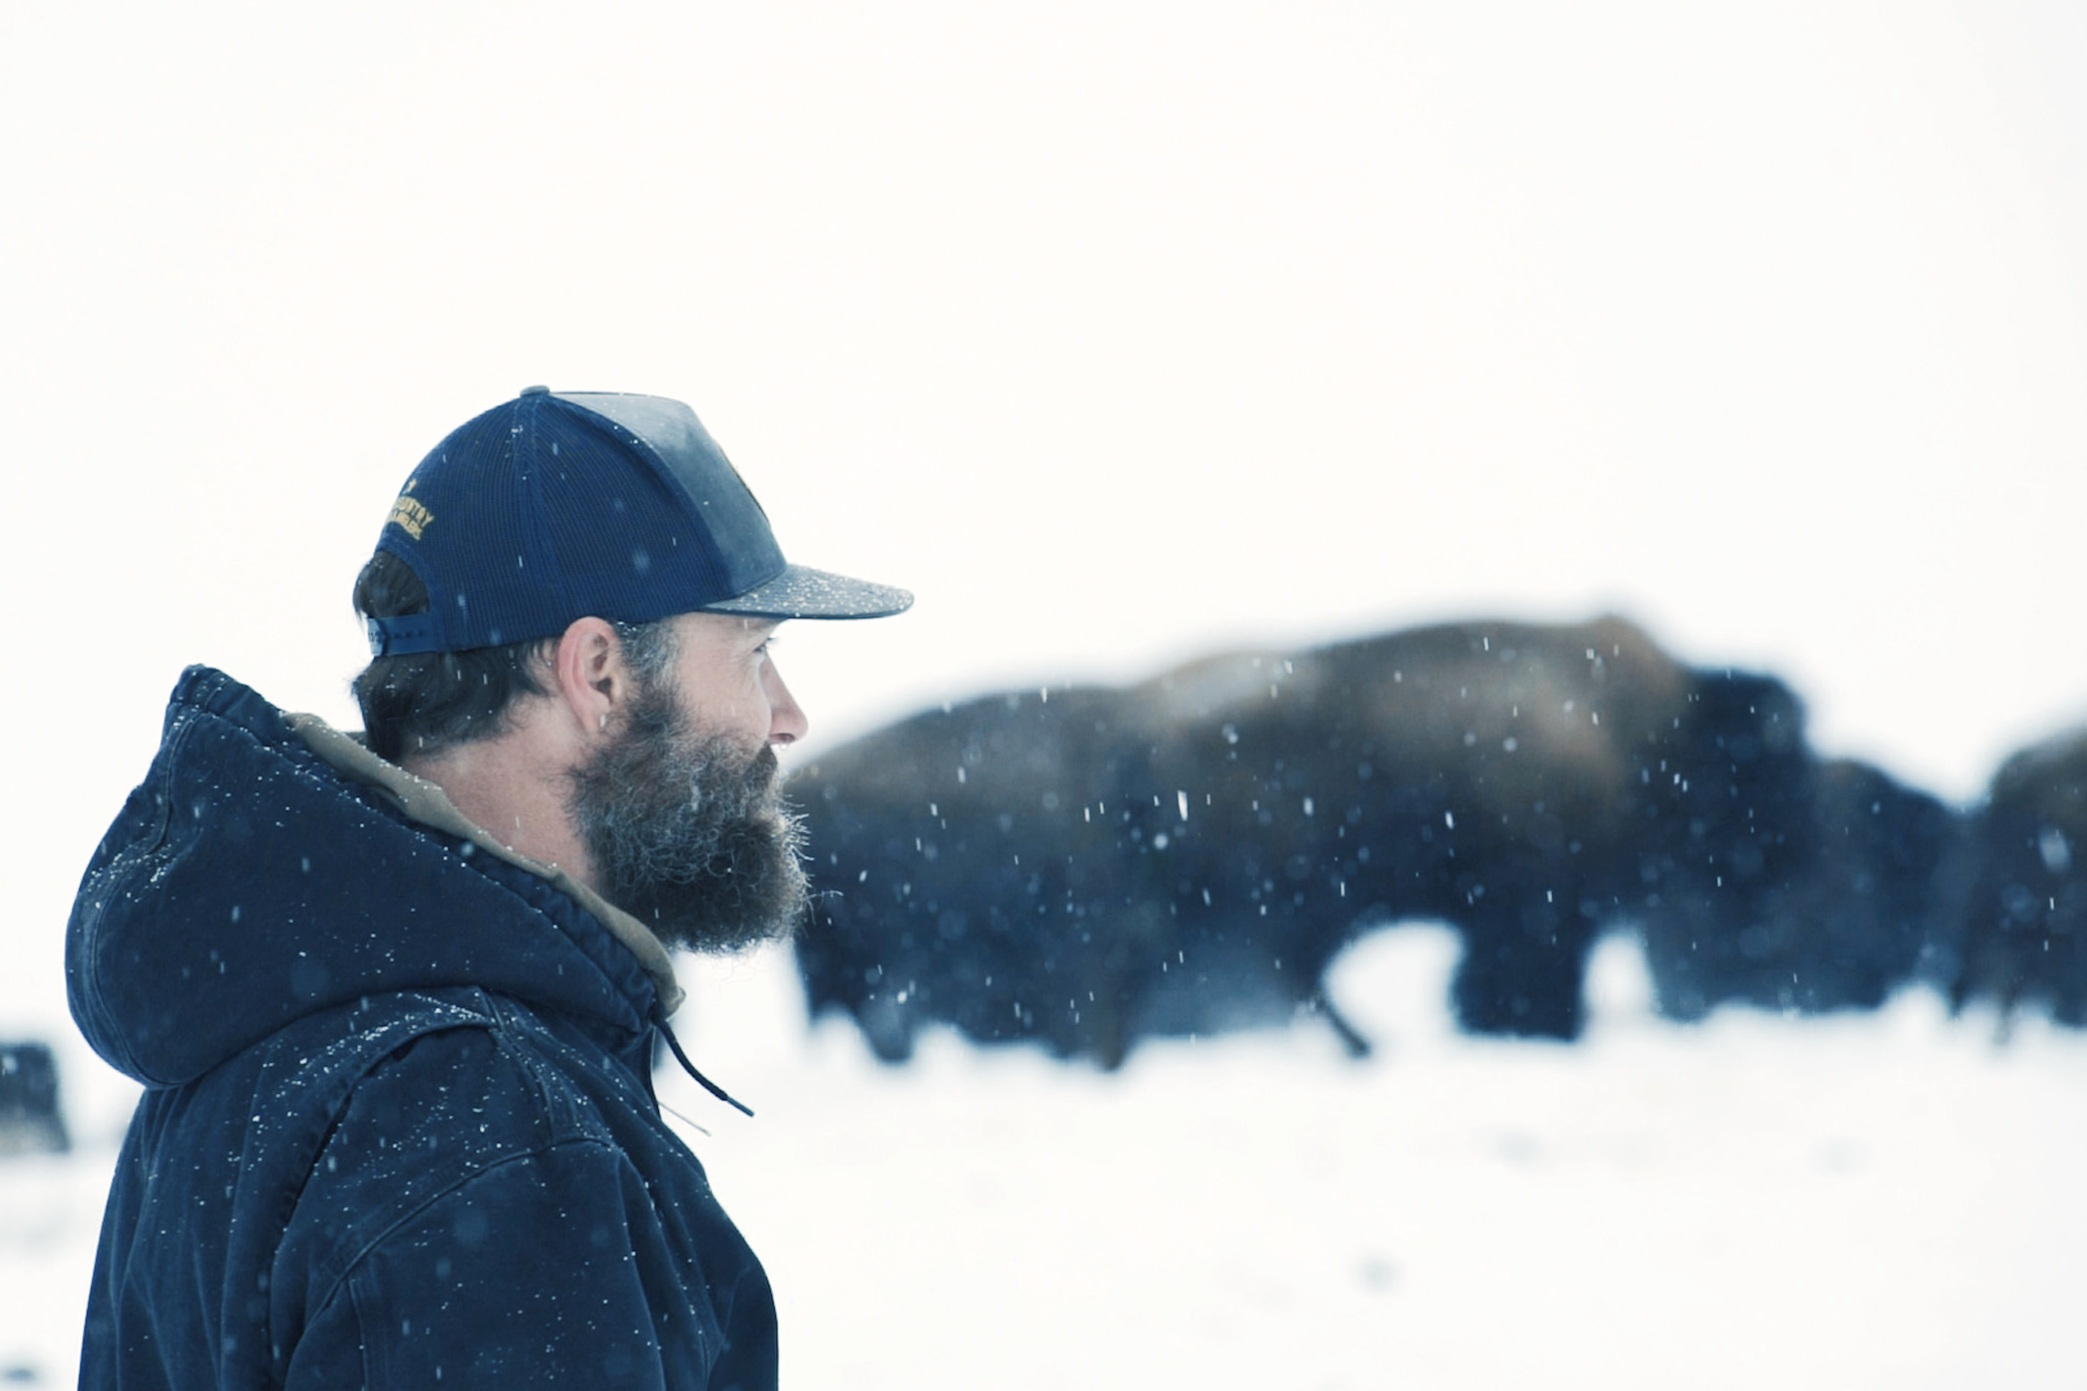 North Bridger Bison - Creating Media Assets for an Emerging Business